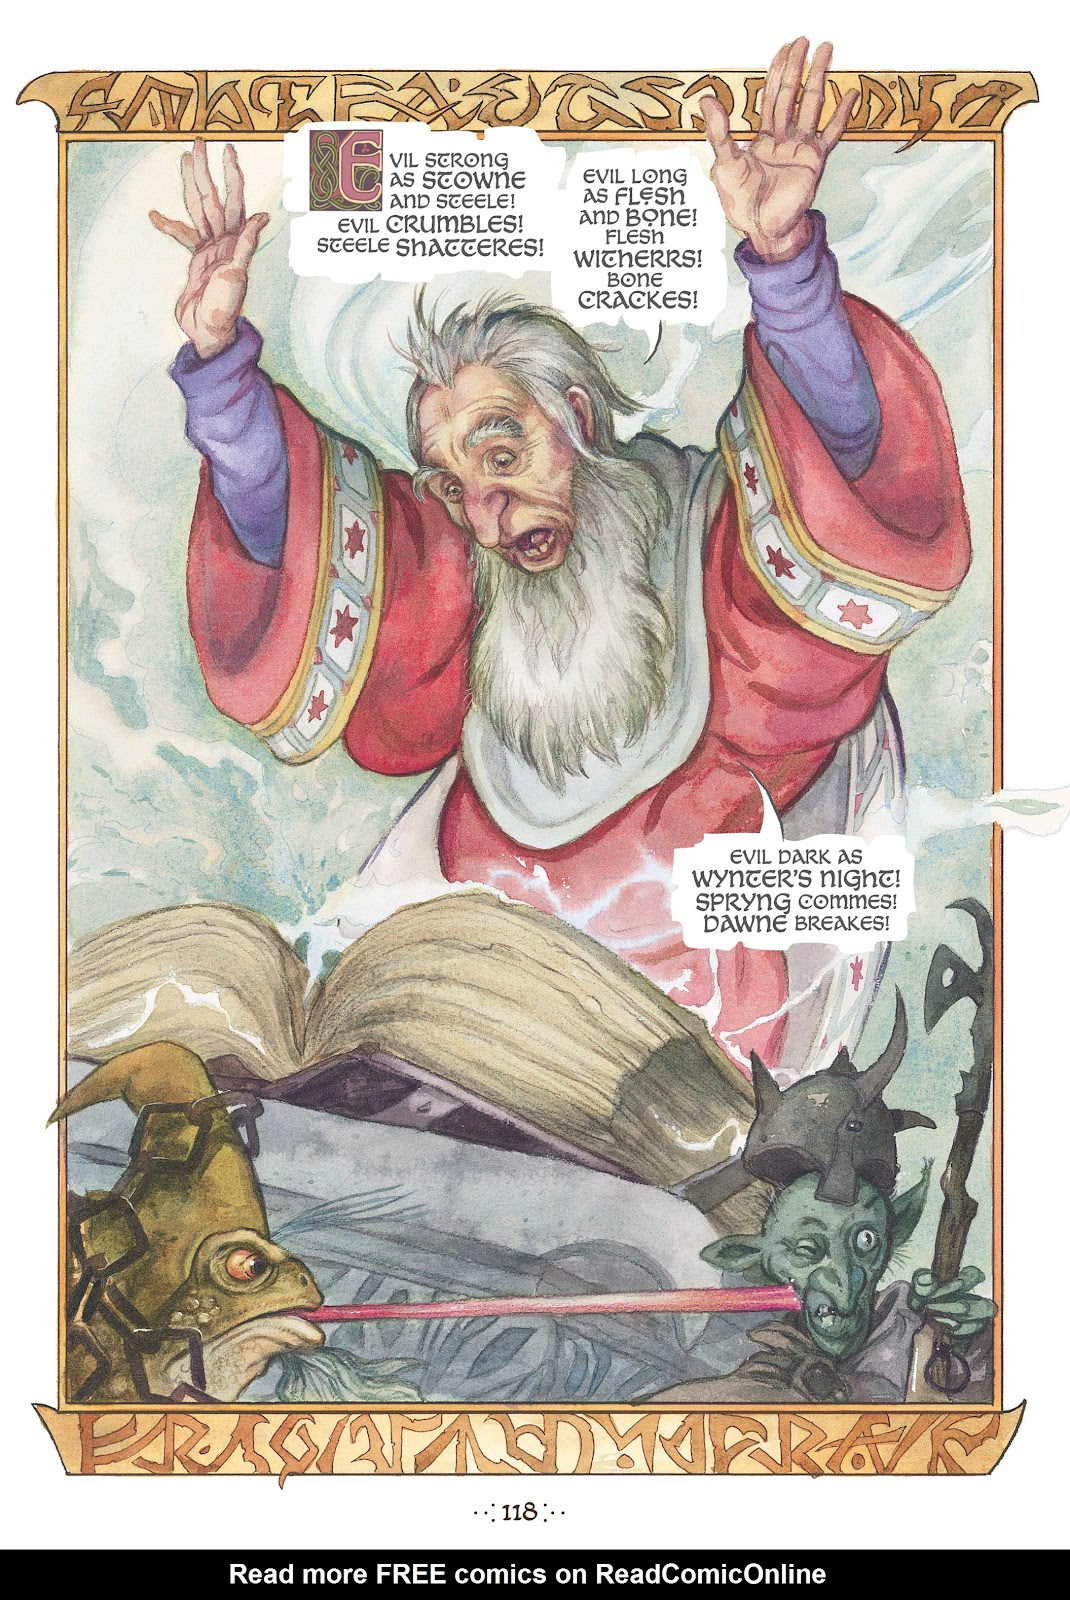 Read online The Wizard's Tale comic -  Issue # TPB - 112